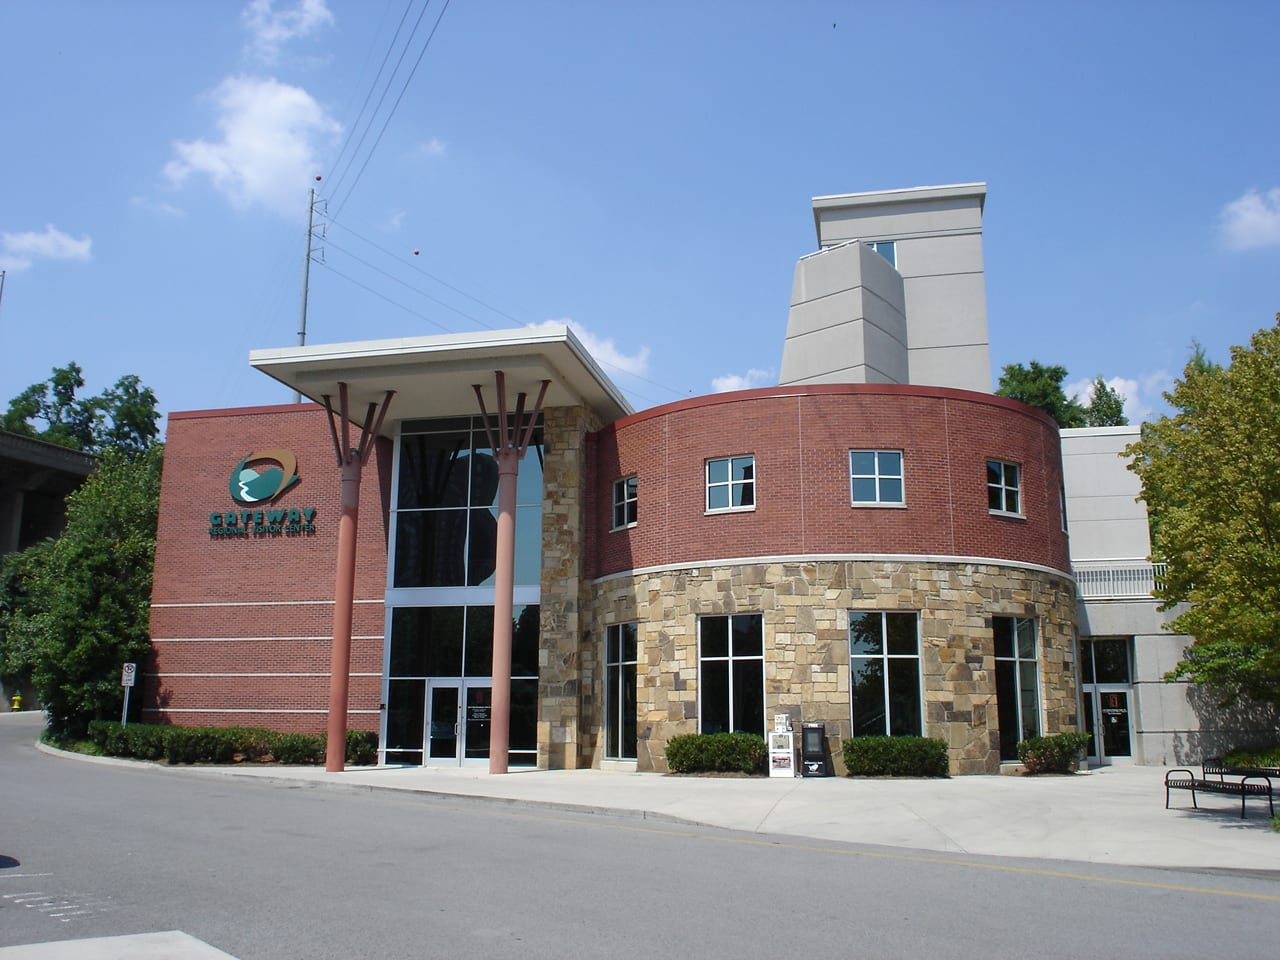 Gateway Visitor Center